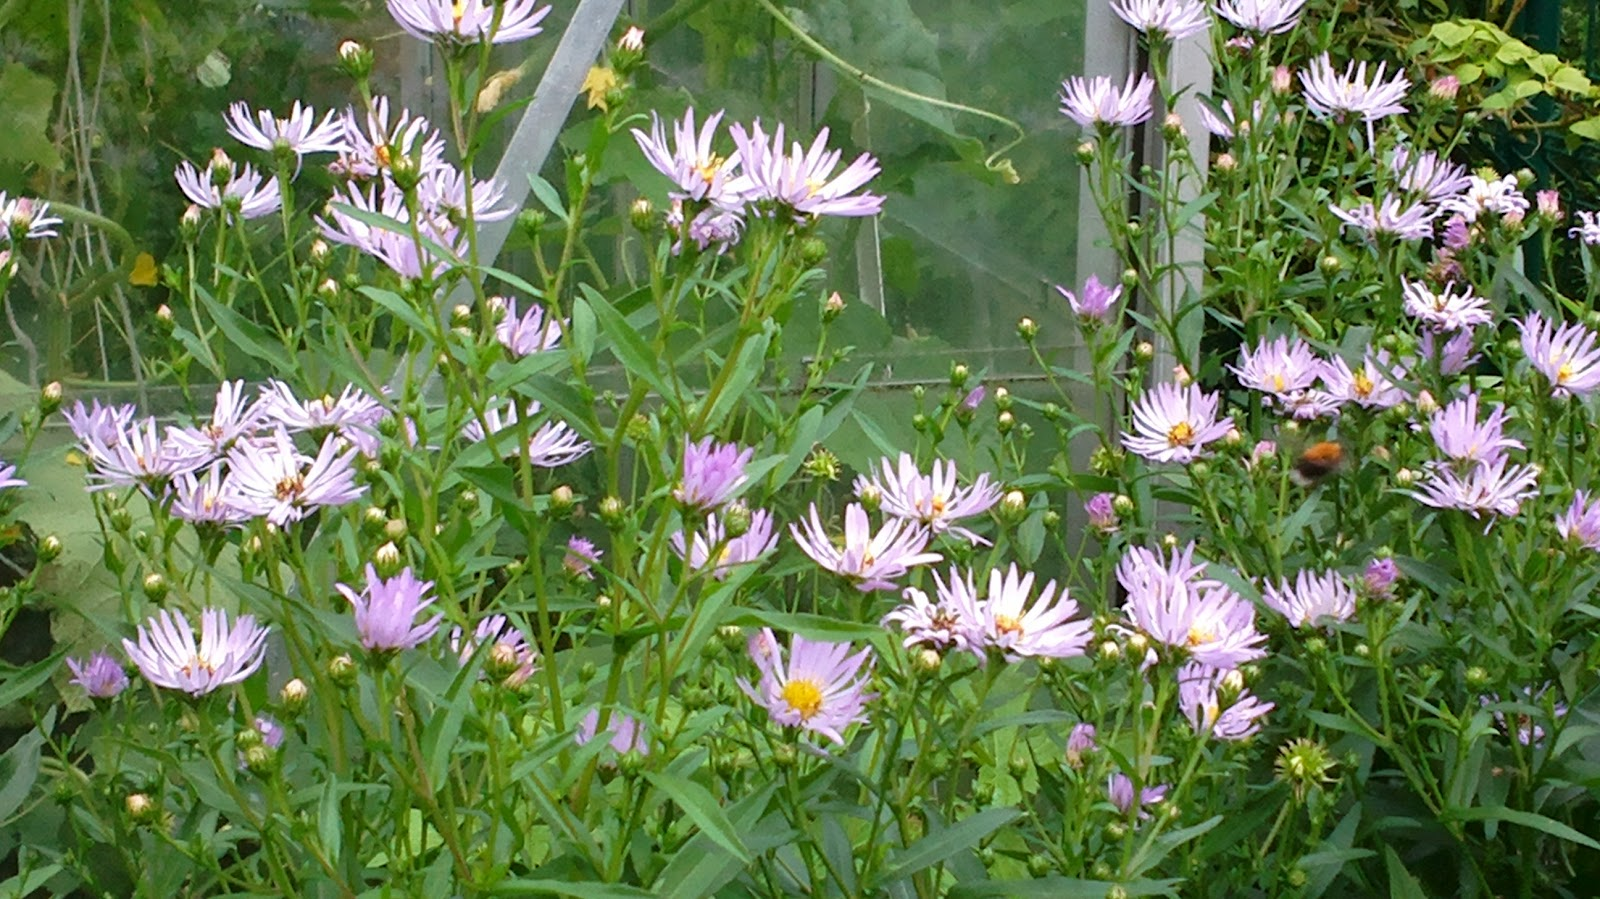 Syysasterit – Asters